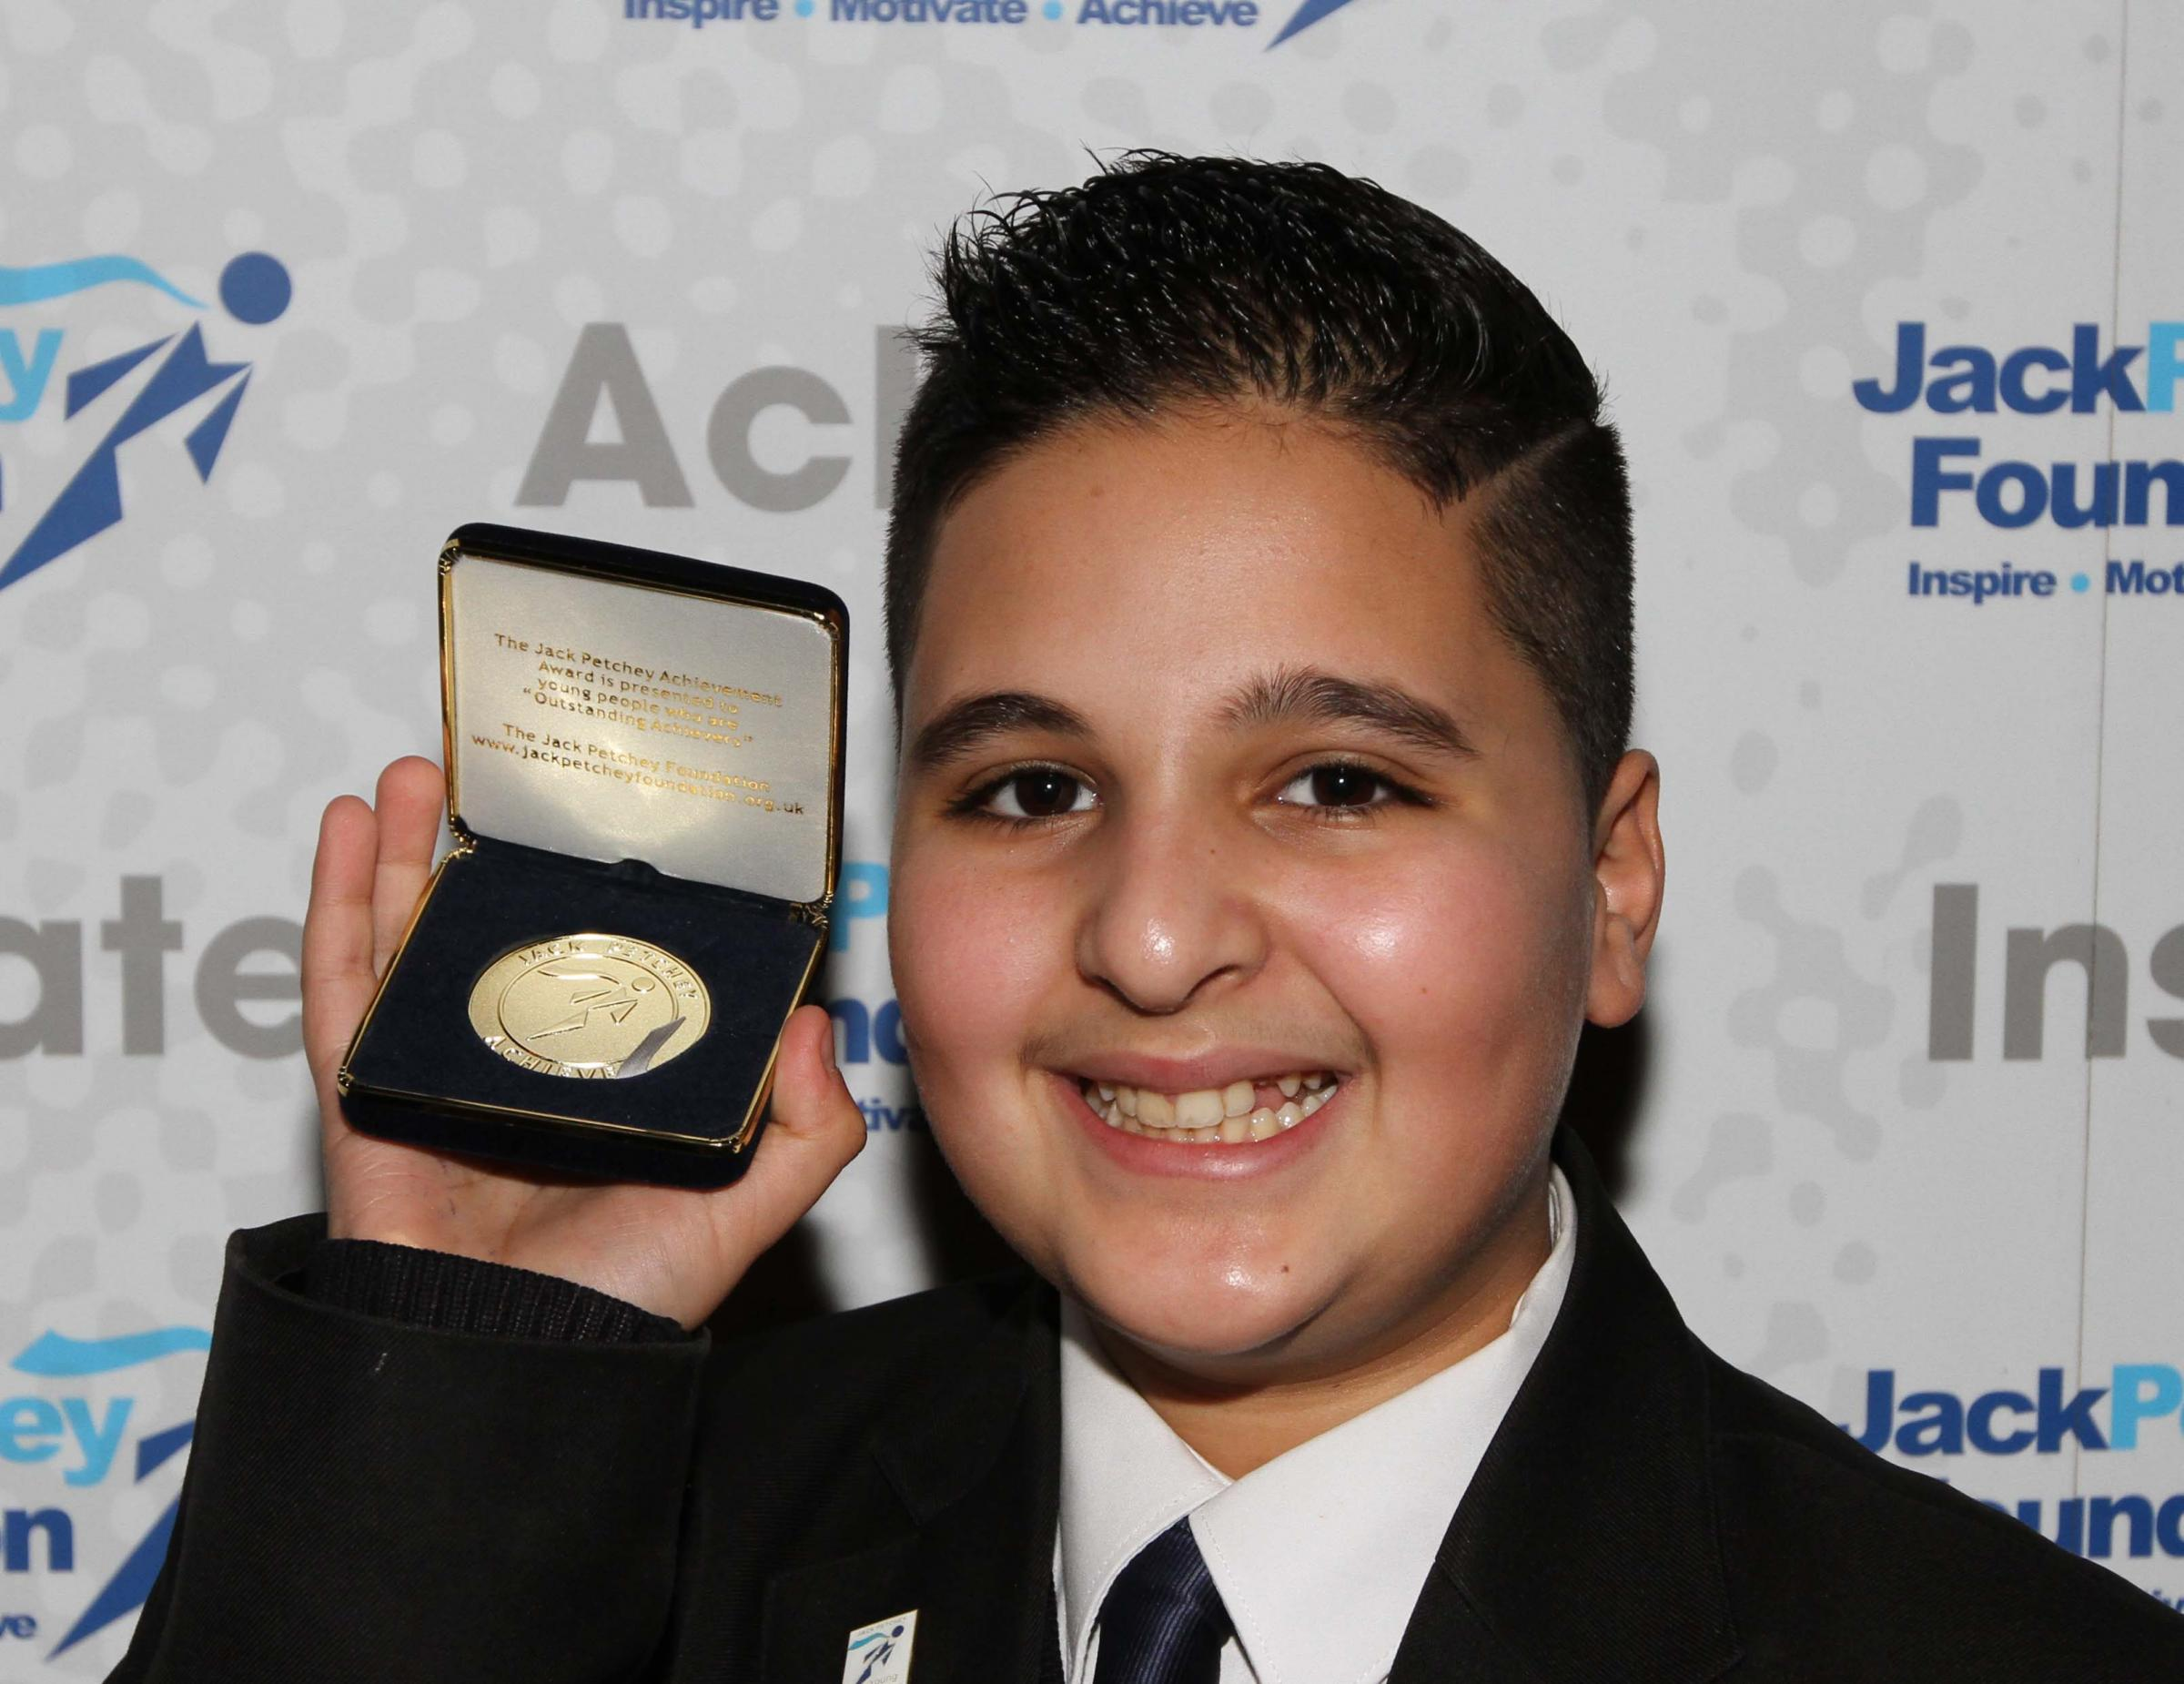 Twelve-year-old Chris Charalambous was one of 137 Enfield students to win a Jack Petchey Foundation Achievement Award